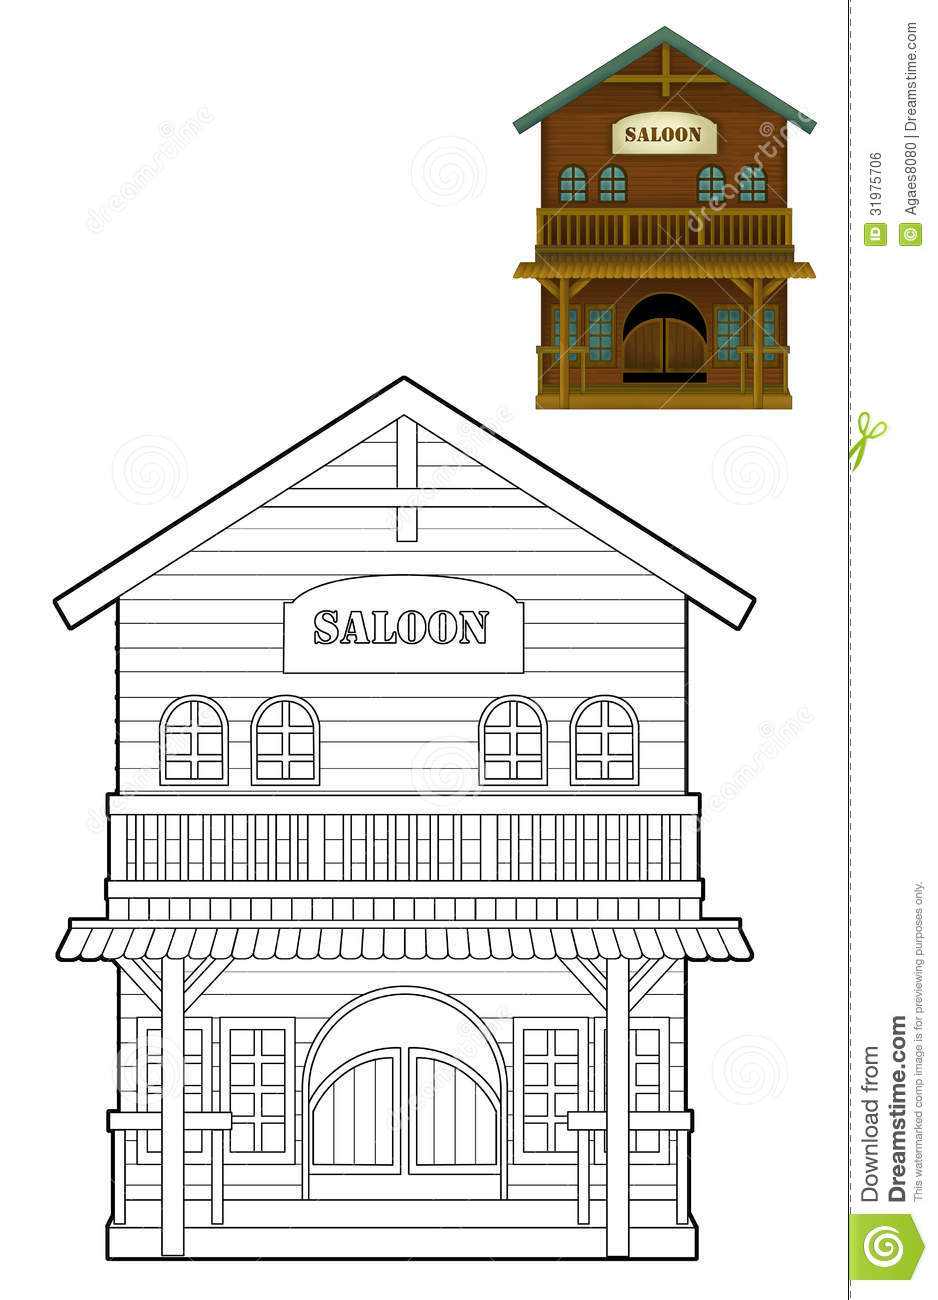 old west buildings coloring pages - photo#8